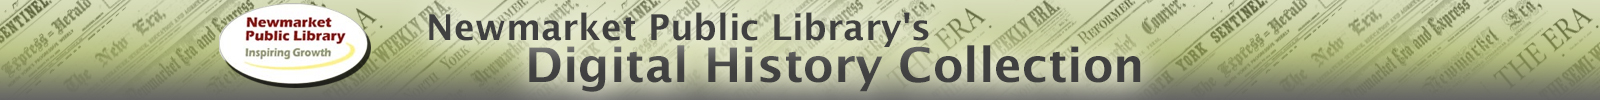 Newmarket Public Library's Digital History Collection